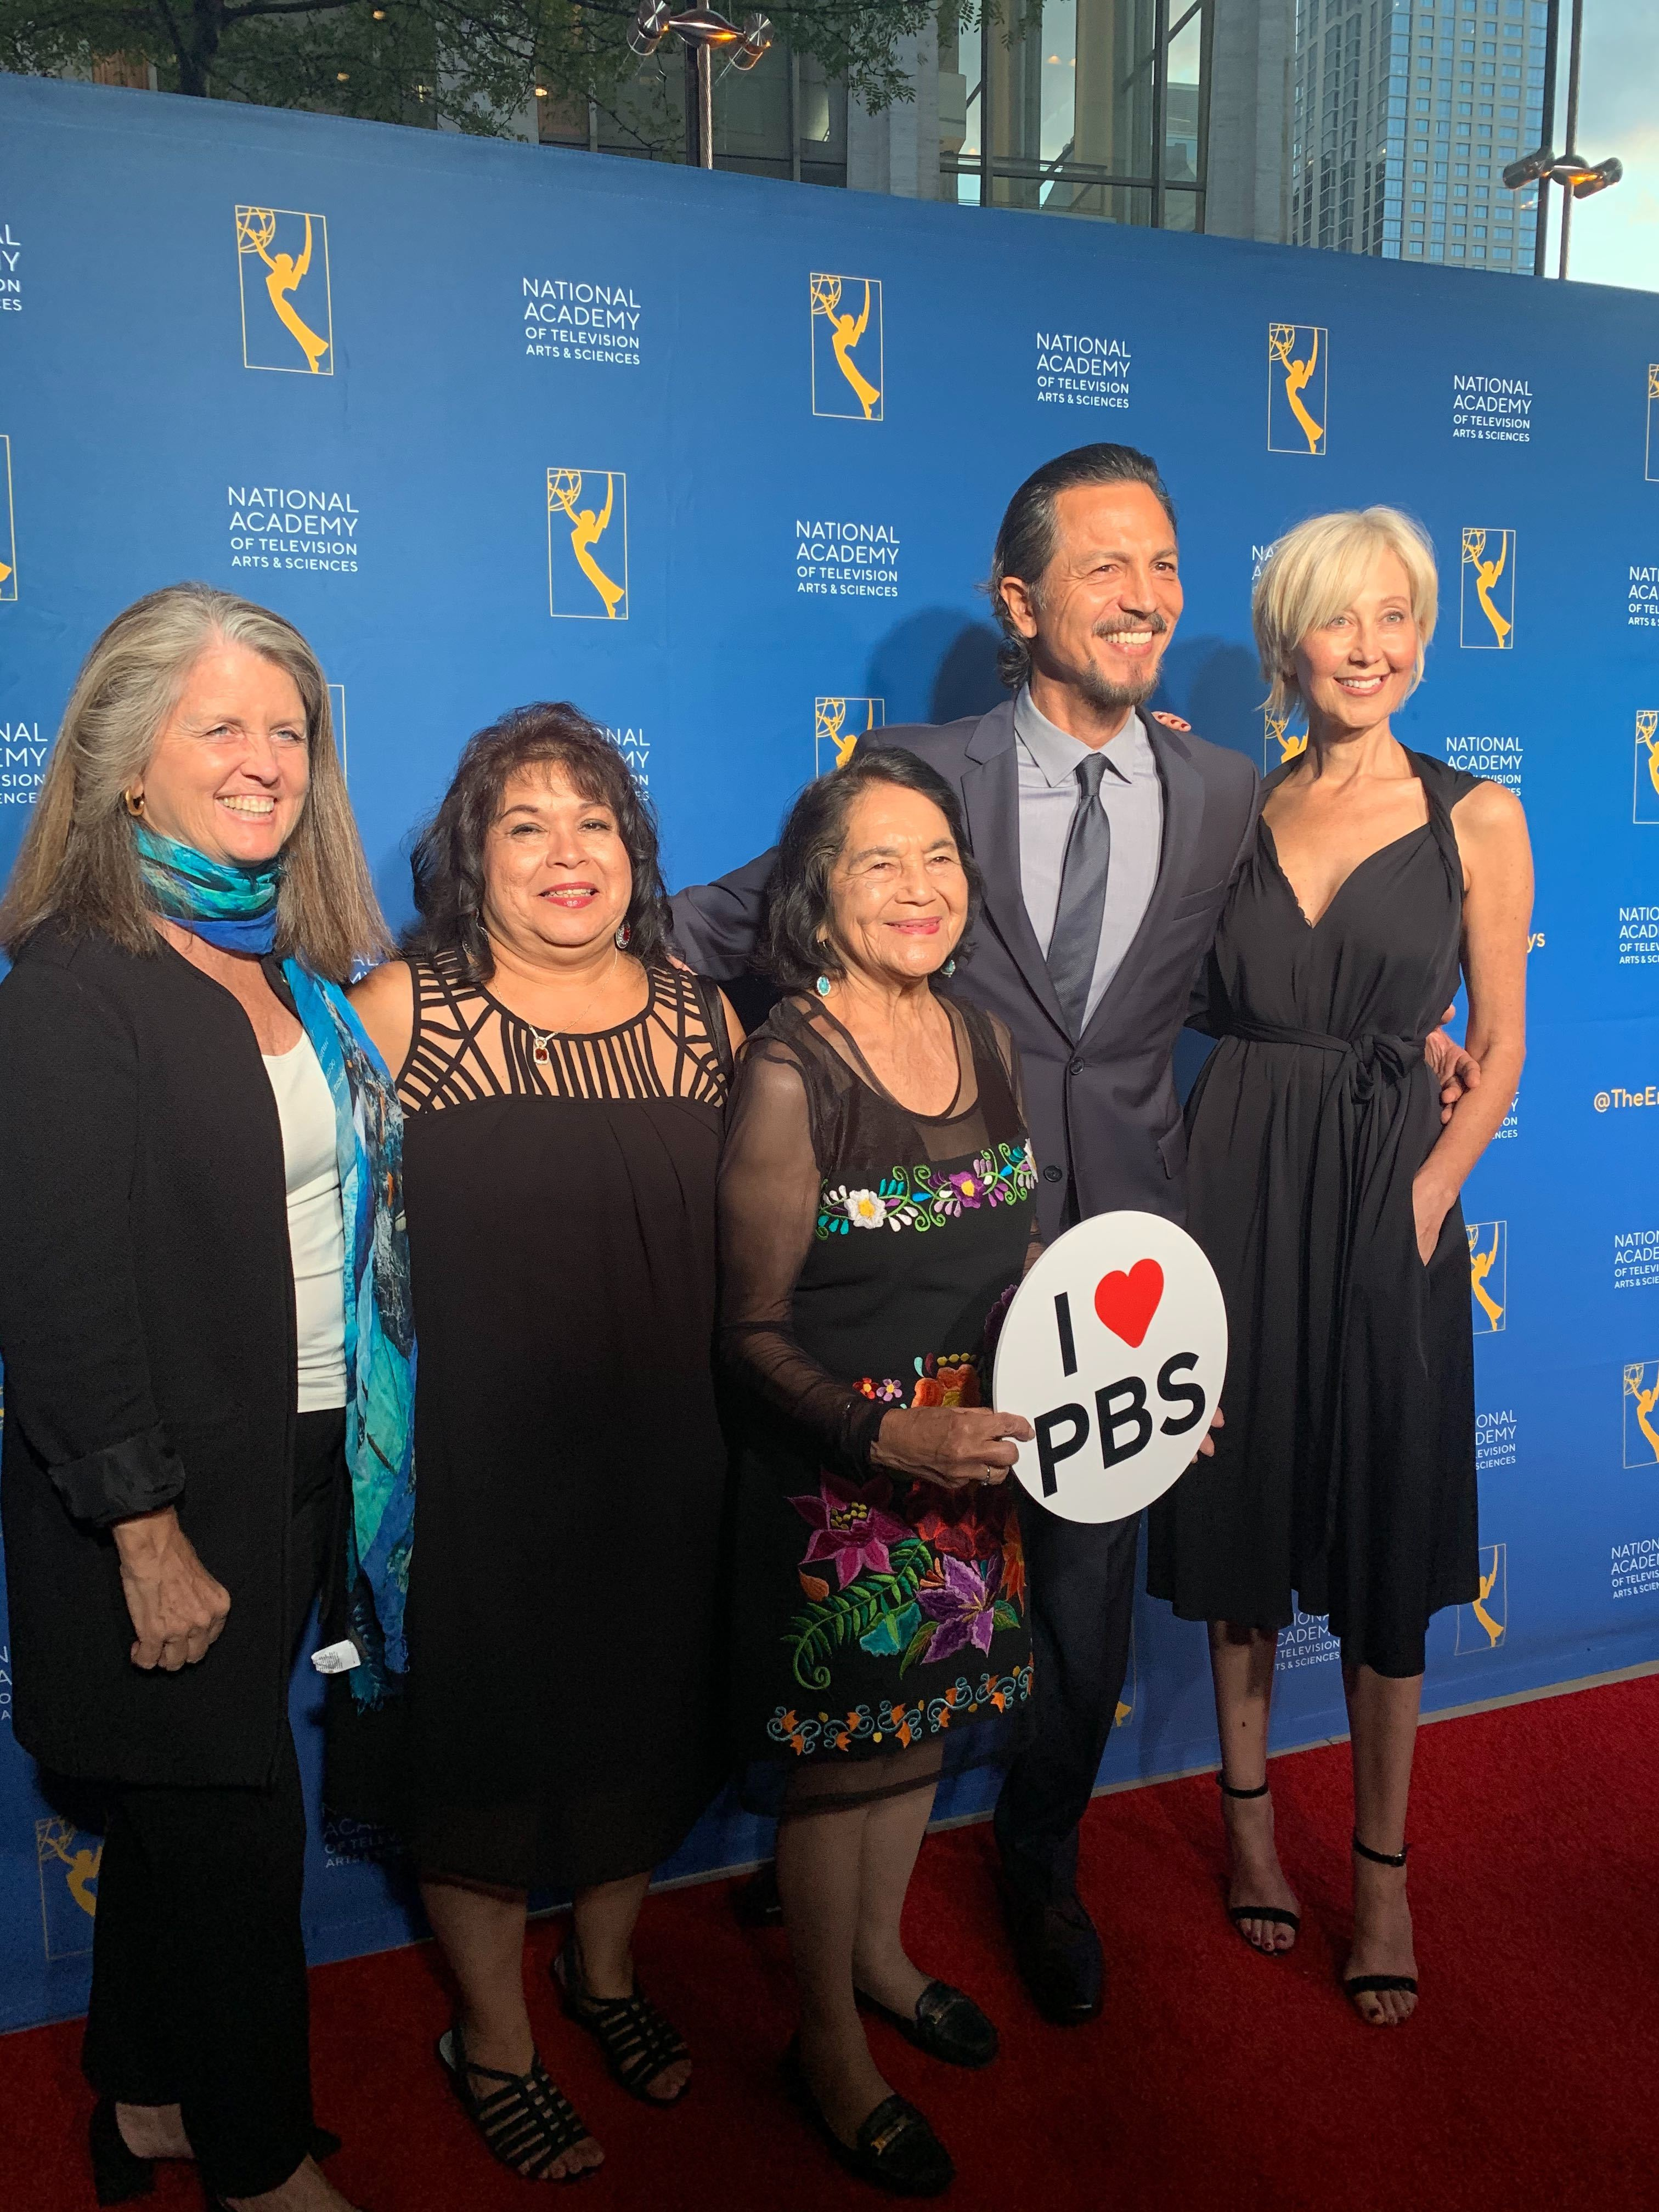 The team from Dolores, including Dolores Huerta herself, and director Peter Bratt